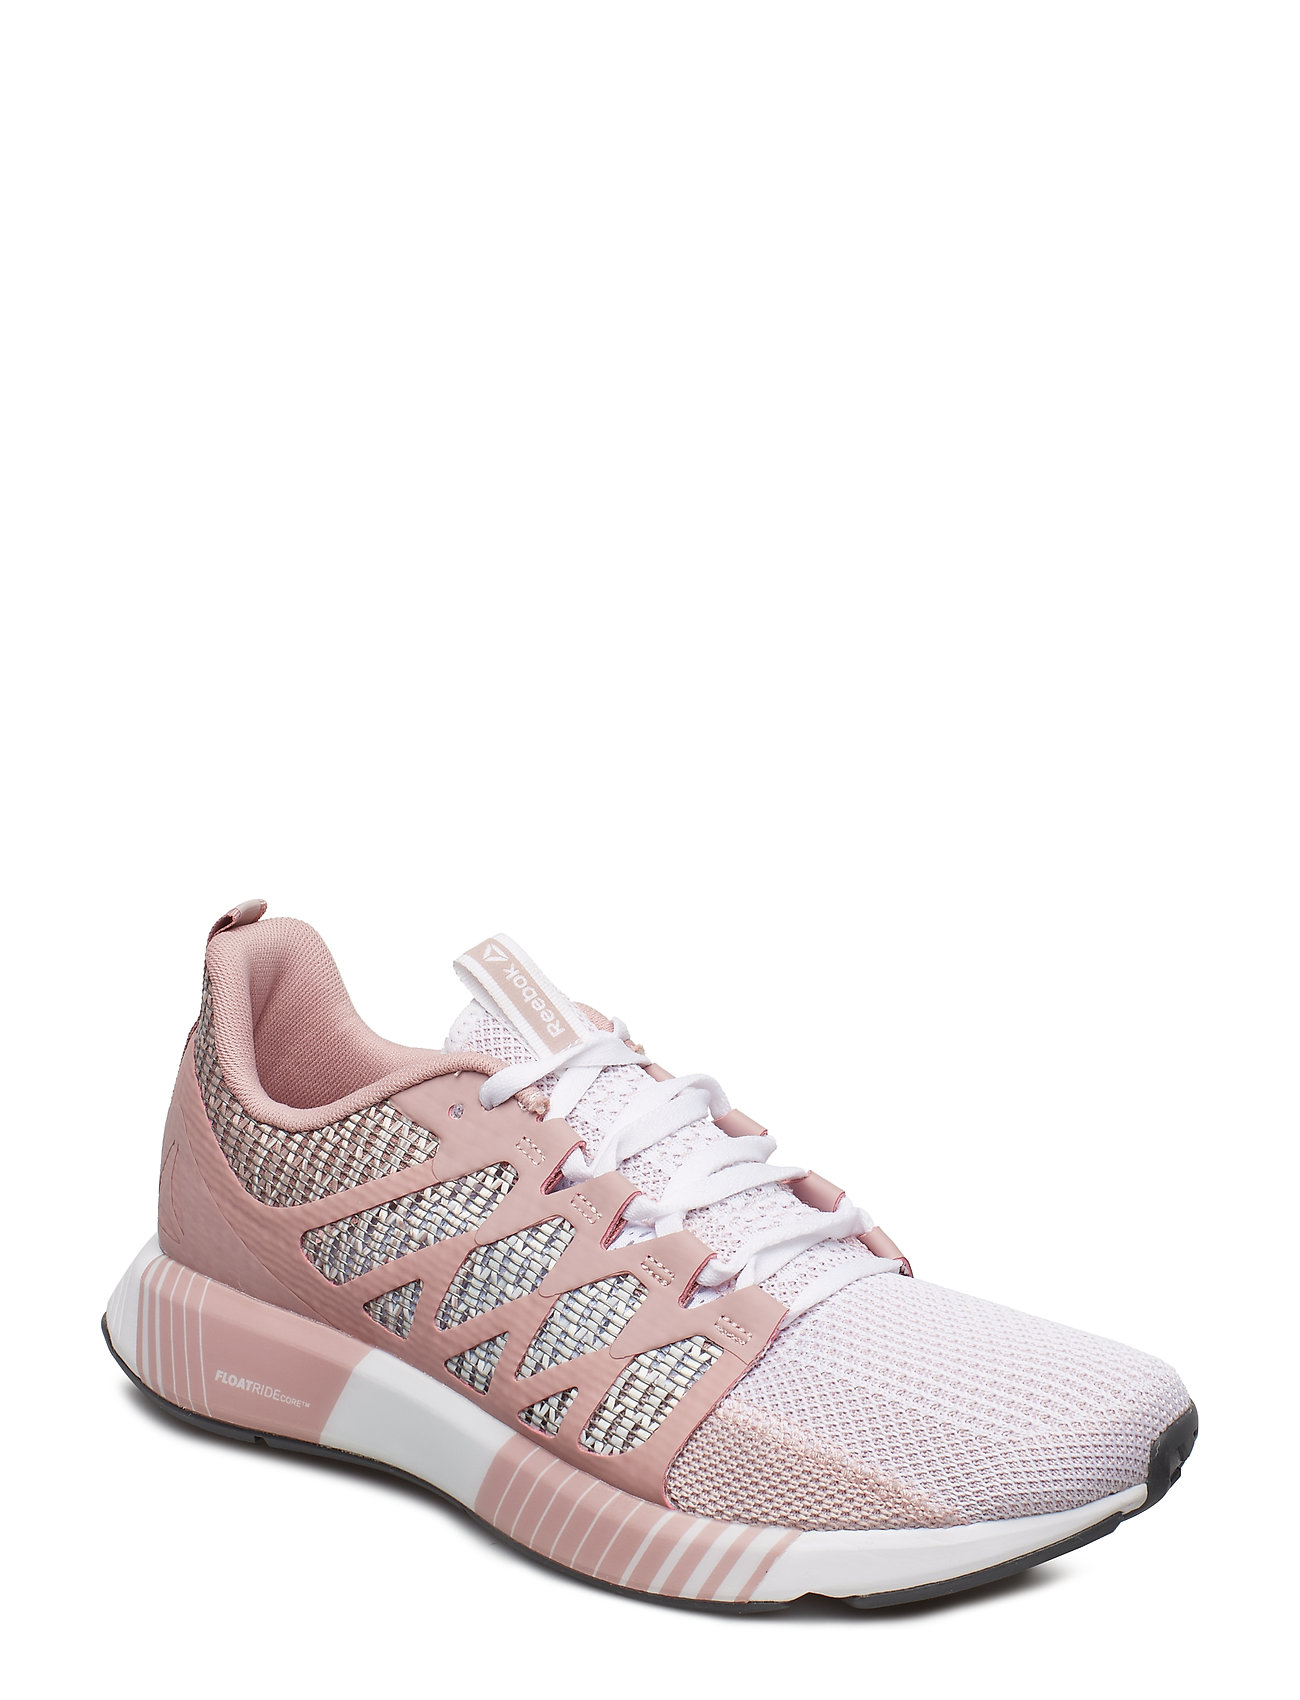 REEBOK Fusion Flexweave Cage Shoes Sport Shoes Running Shoes Pink REEBOK PERFORMANCE